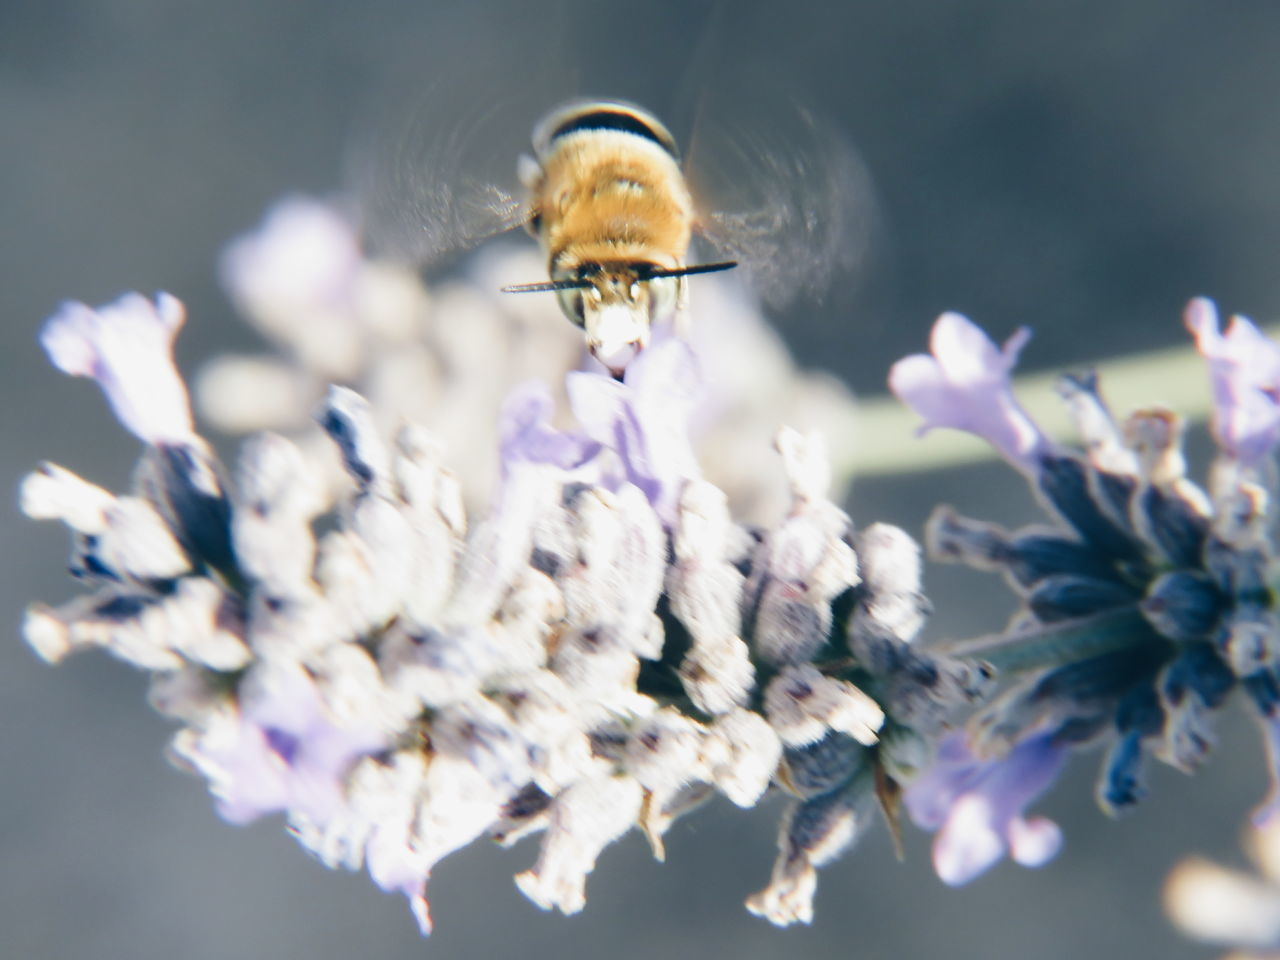 insect, animals in the wild, animal themes, one animal, flower, fragility, animal wildlife, bee, nature, beauty in nature, selective focus, honey bee, no people, symbiotic relationship, pollination, petal, flying, close-up, day, buzzing, outdoors, growth, plant, freshness, flower head